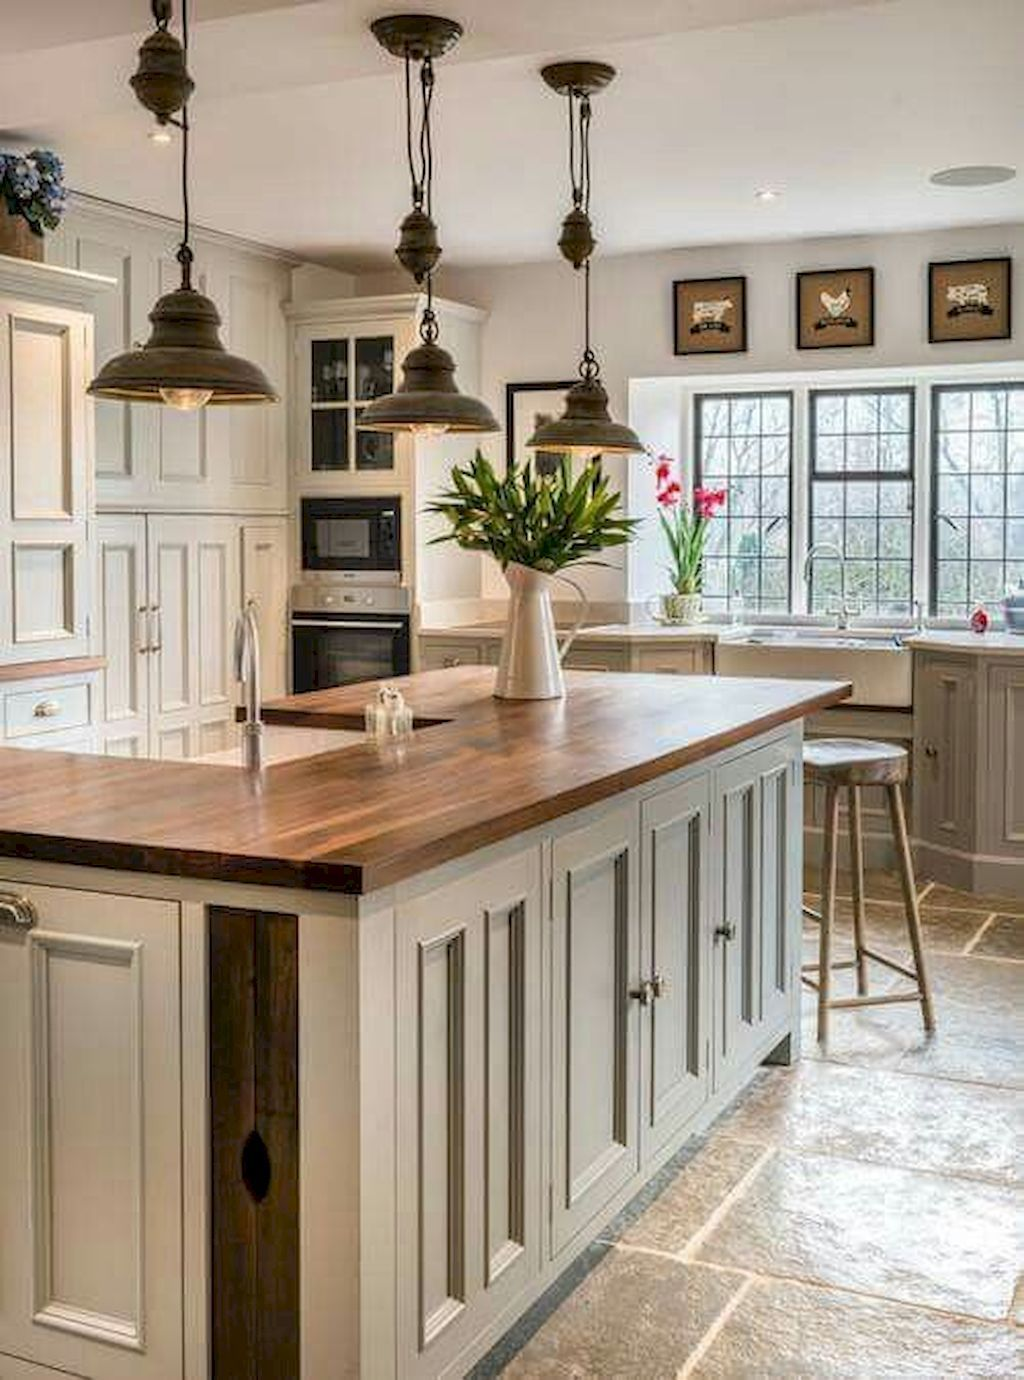 40 Rustic Modern Farmhouse Kitchen Design Ideas | Modern farmhouse on industrial porch design, industrial barn design, industrial farmhouse cafe design, industrial family room design, industrial houses design, industrial bathroom design, industrial laundry design, industrial office design, industrial restaurant design, industrial bedroom design, industrial lounge design,